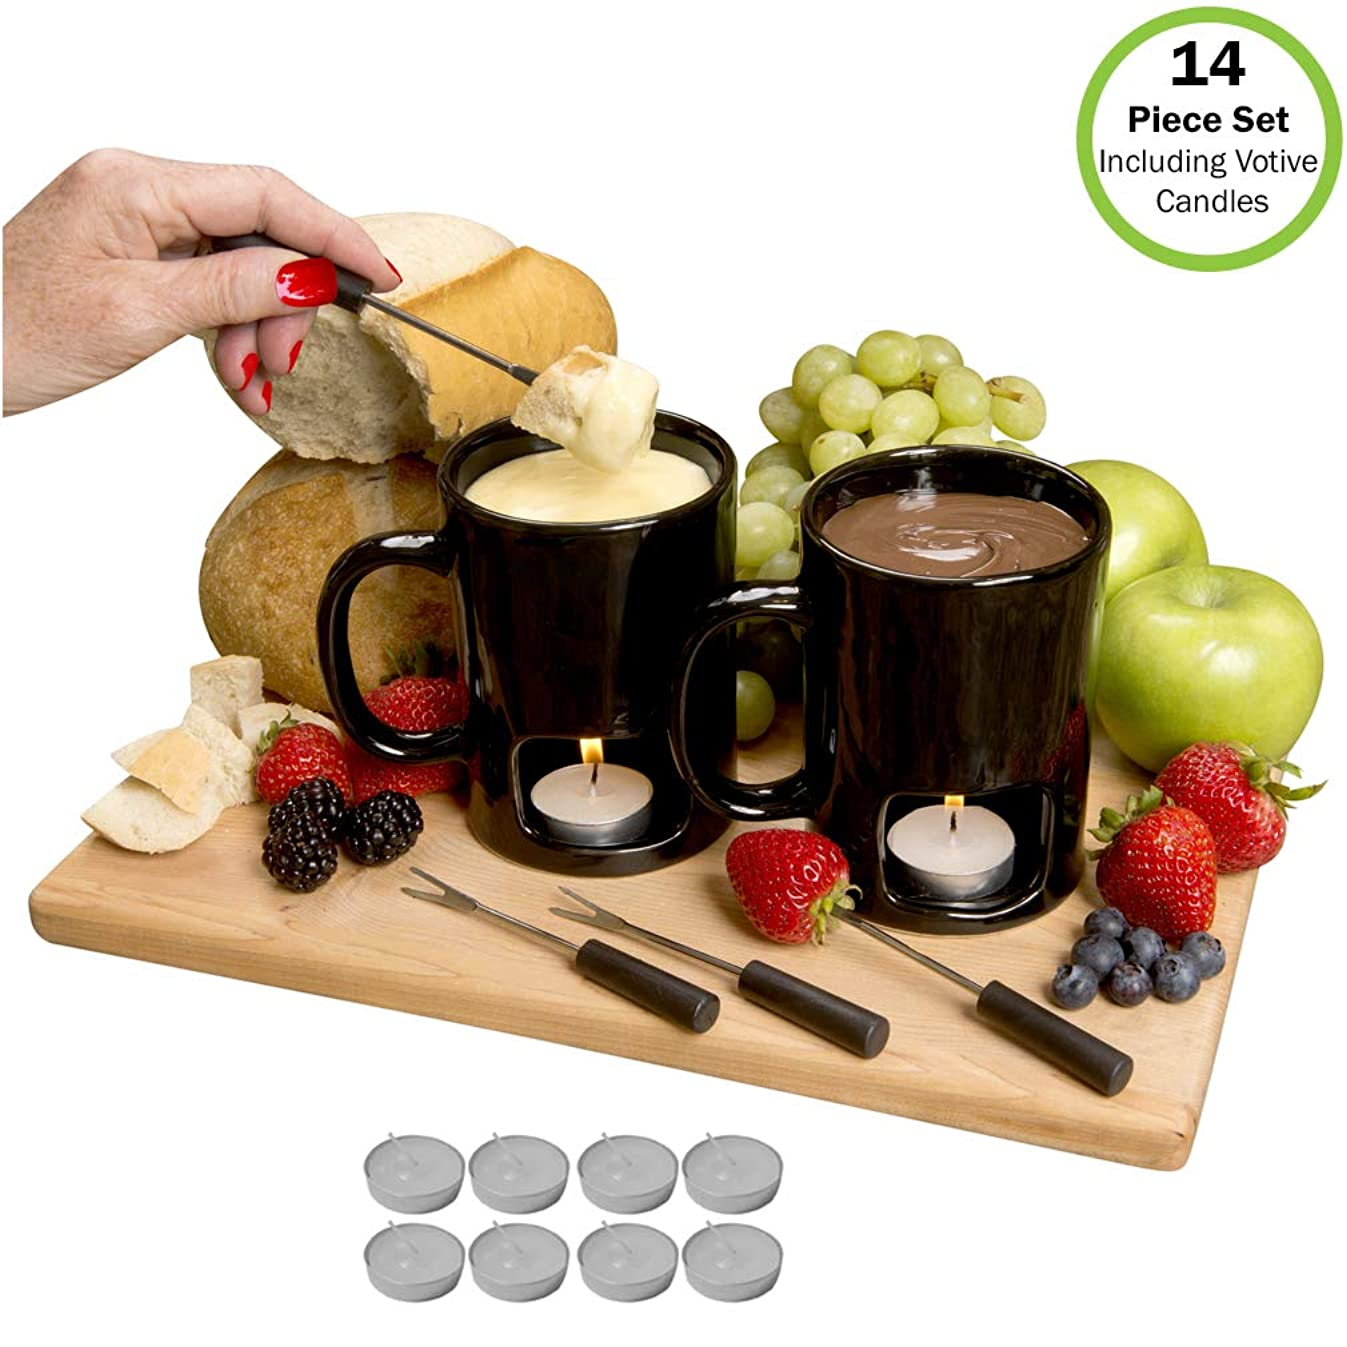 Evelots Fondue Mugs,2 Mugs,4 Forks & 8 Votive Candles-Minor Defects-14 Piece Set